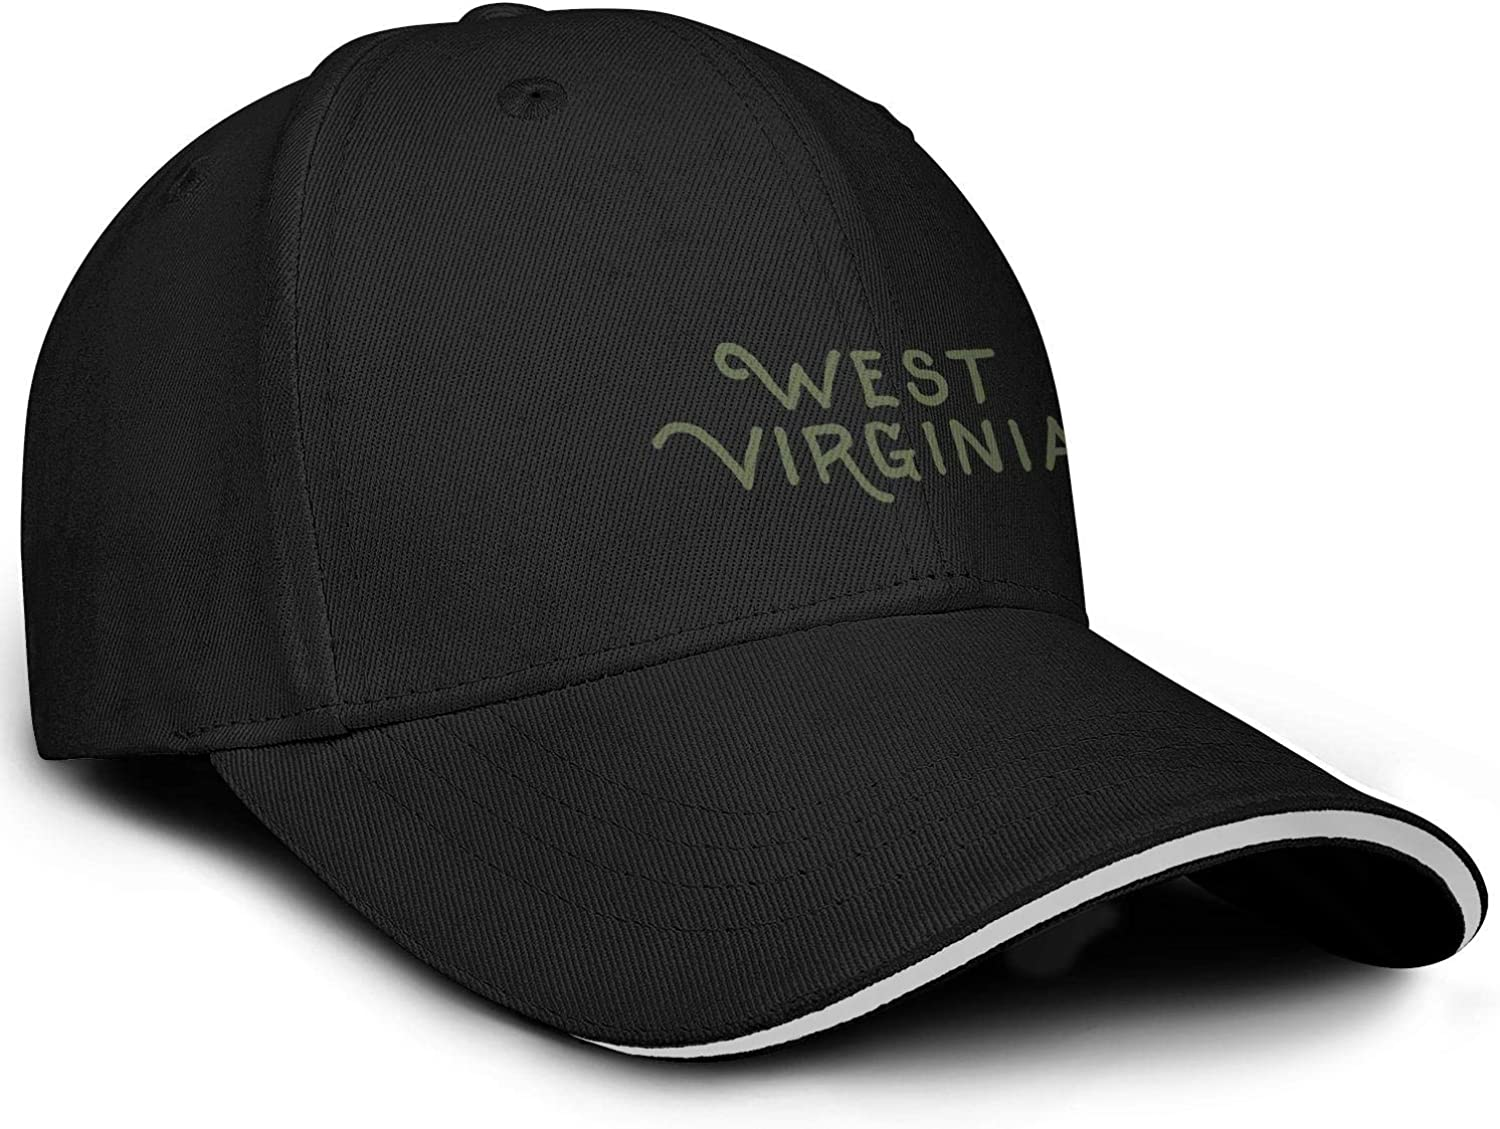 TylerLiu Baseball Cap West Virginia Snapbacks Truker Hats Unisex Adjustable Fashion Cap